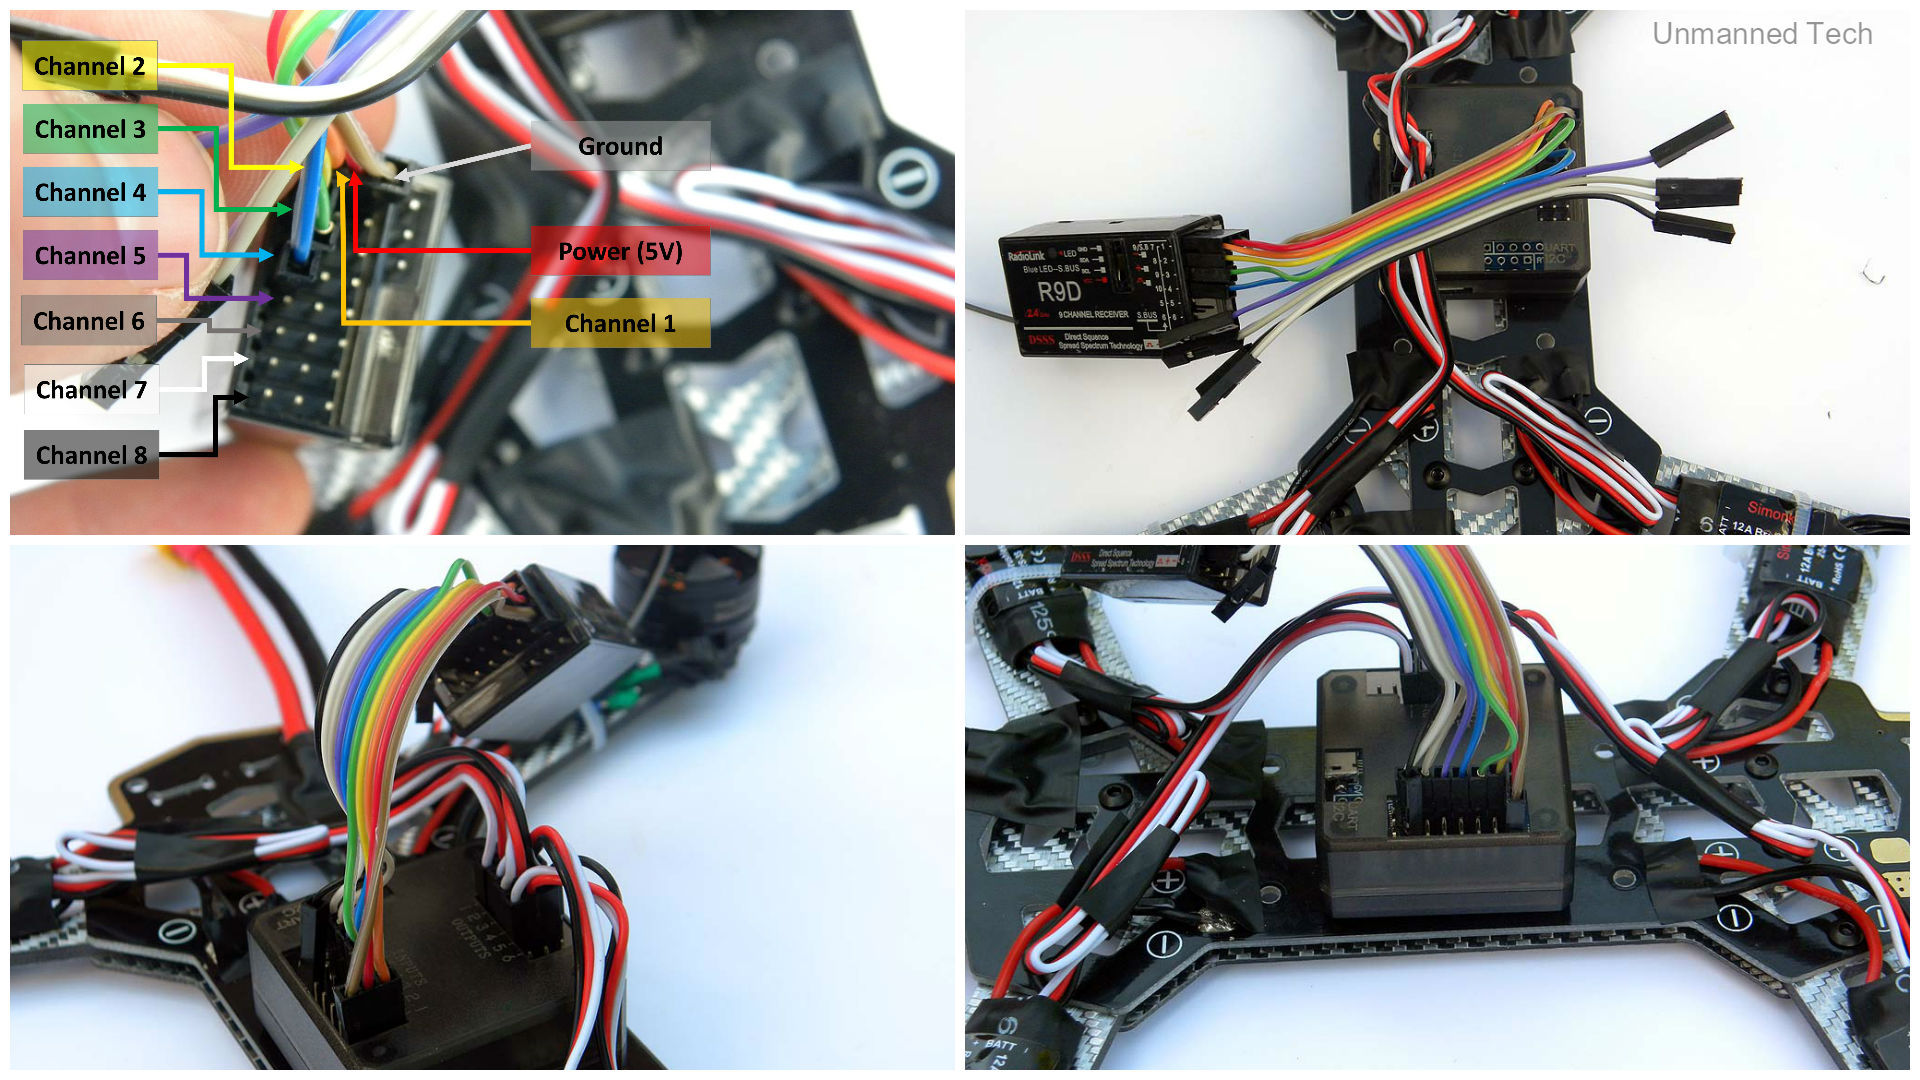 fpv quadcopter wiring diagram 2006 mazda 3 belt beginners guide on how to build a mini 250